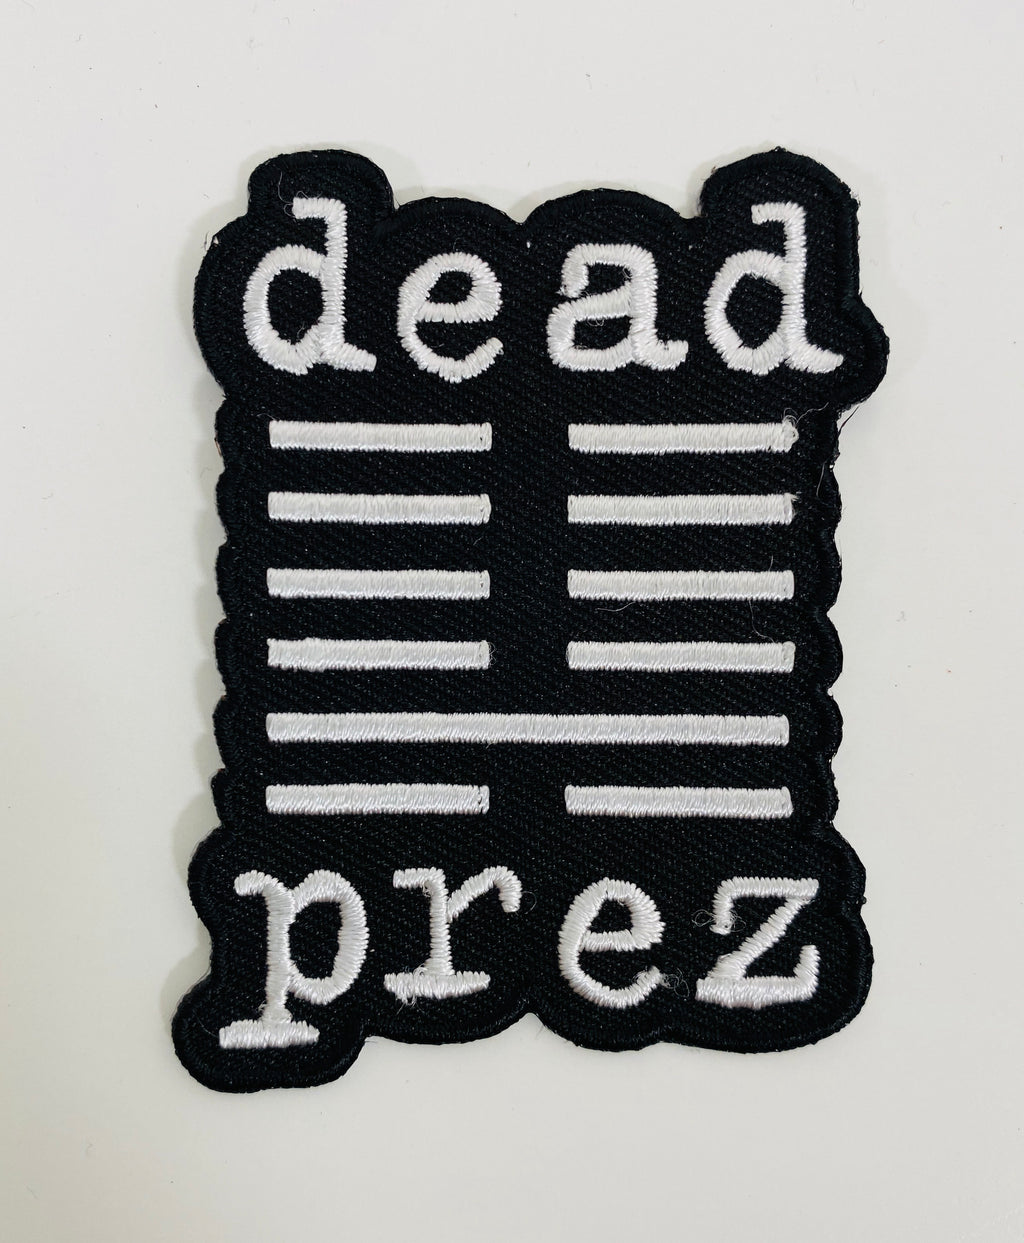 Dead Prez Embroidered Patch